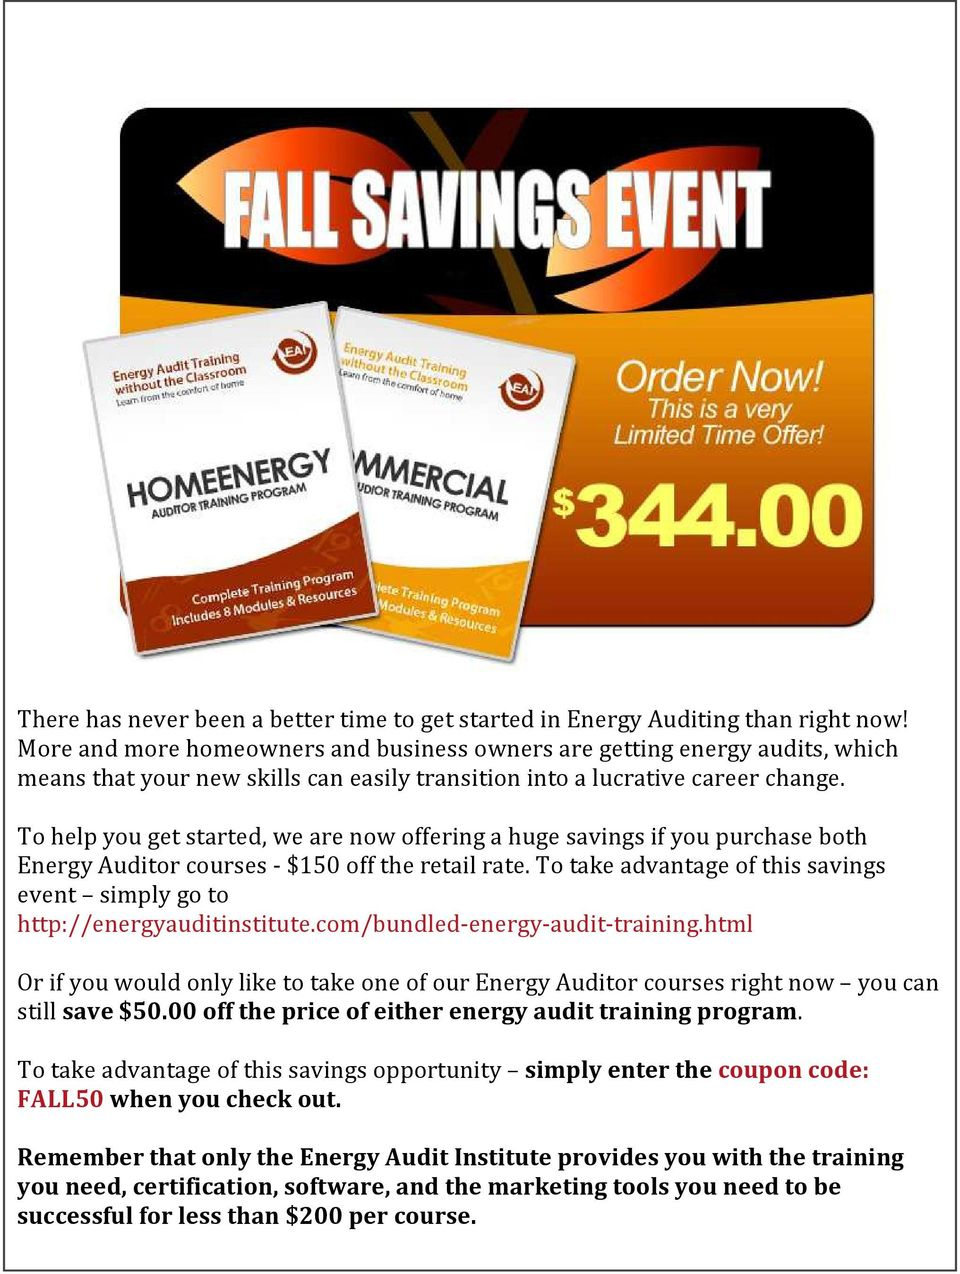 To help you get started, we are now offering a huge savings if you purchase both Energy Auditor courses - $150 off the retail rate.